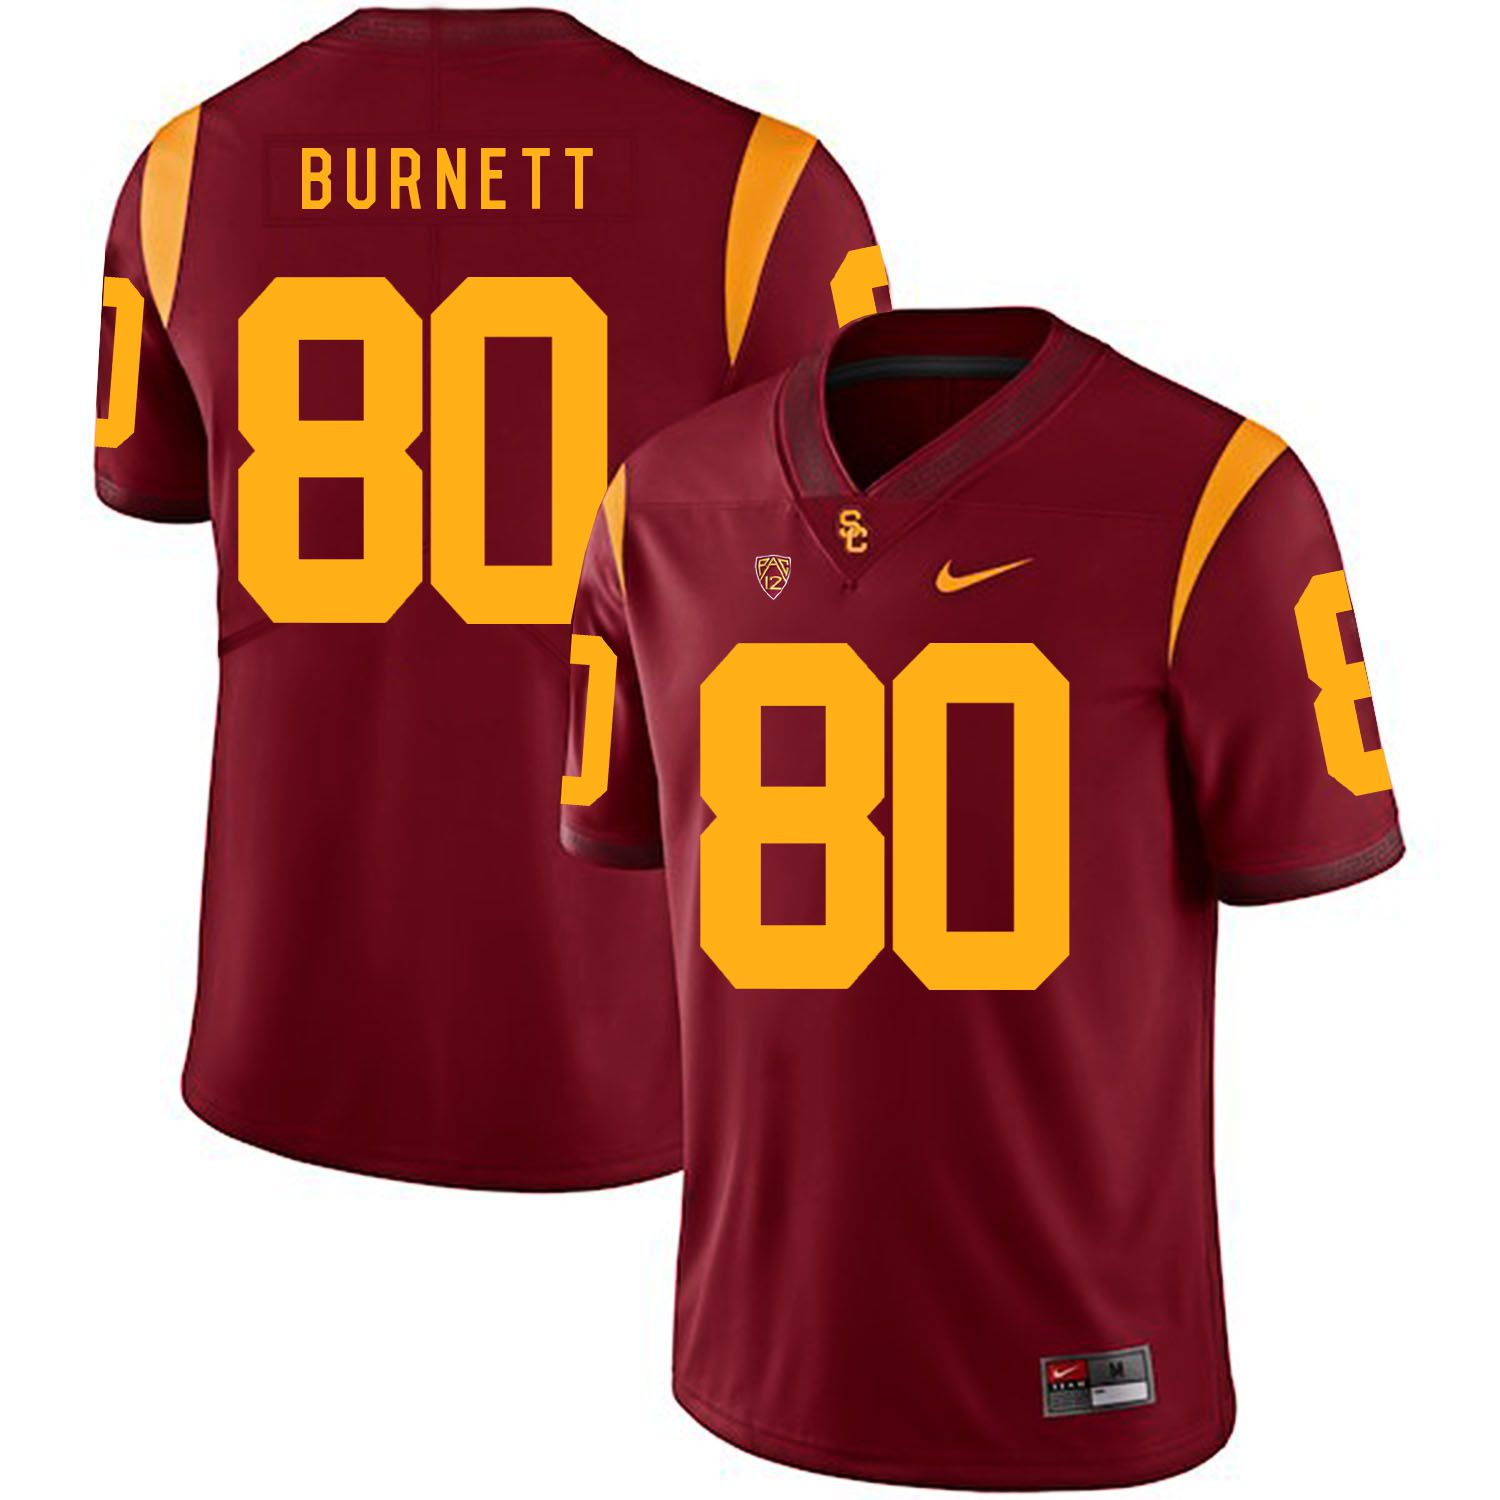 Men USC Trojans 80 Burnett Red Customized NCAA Jerseys